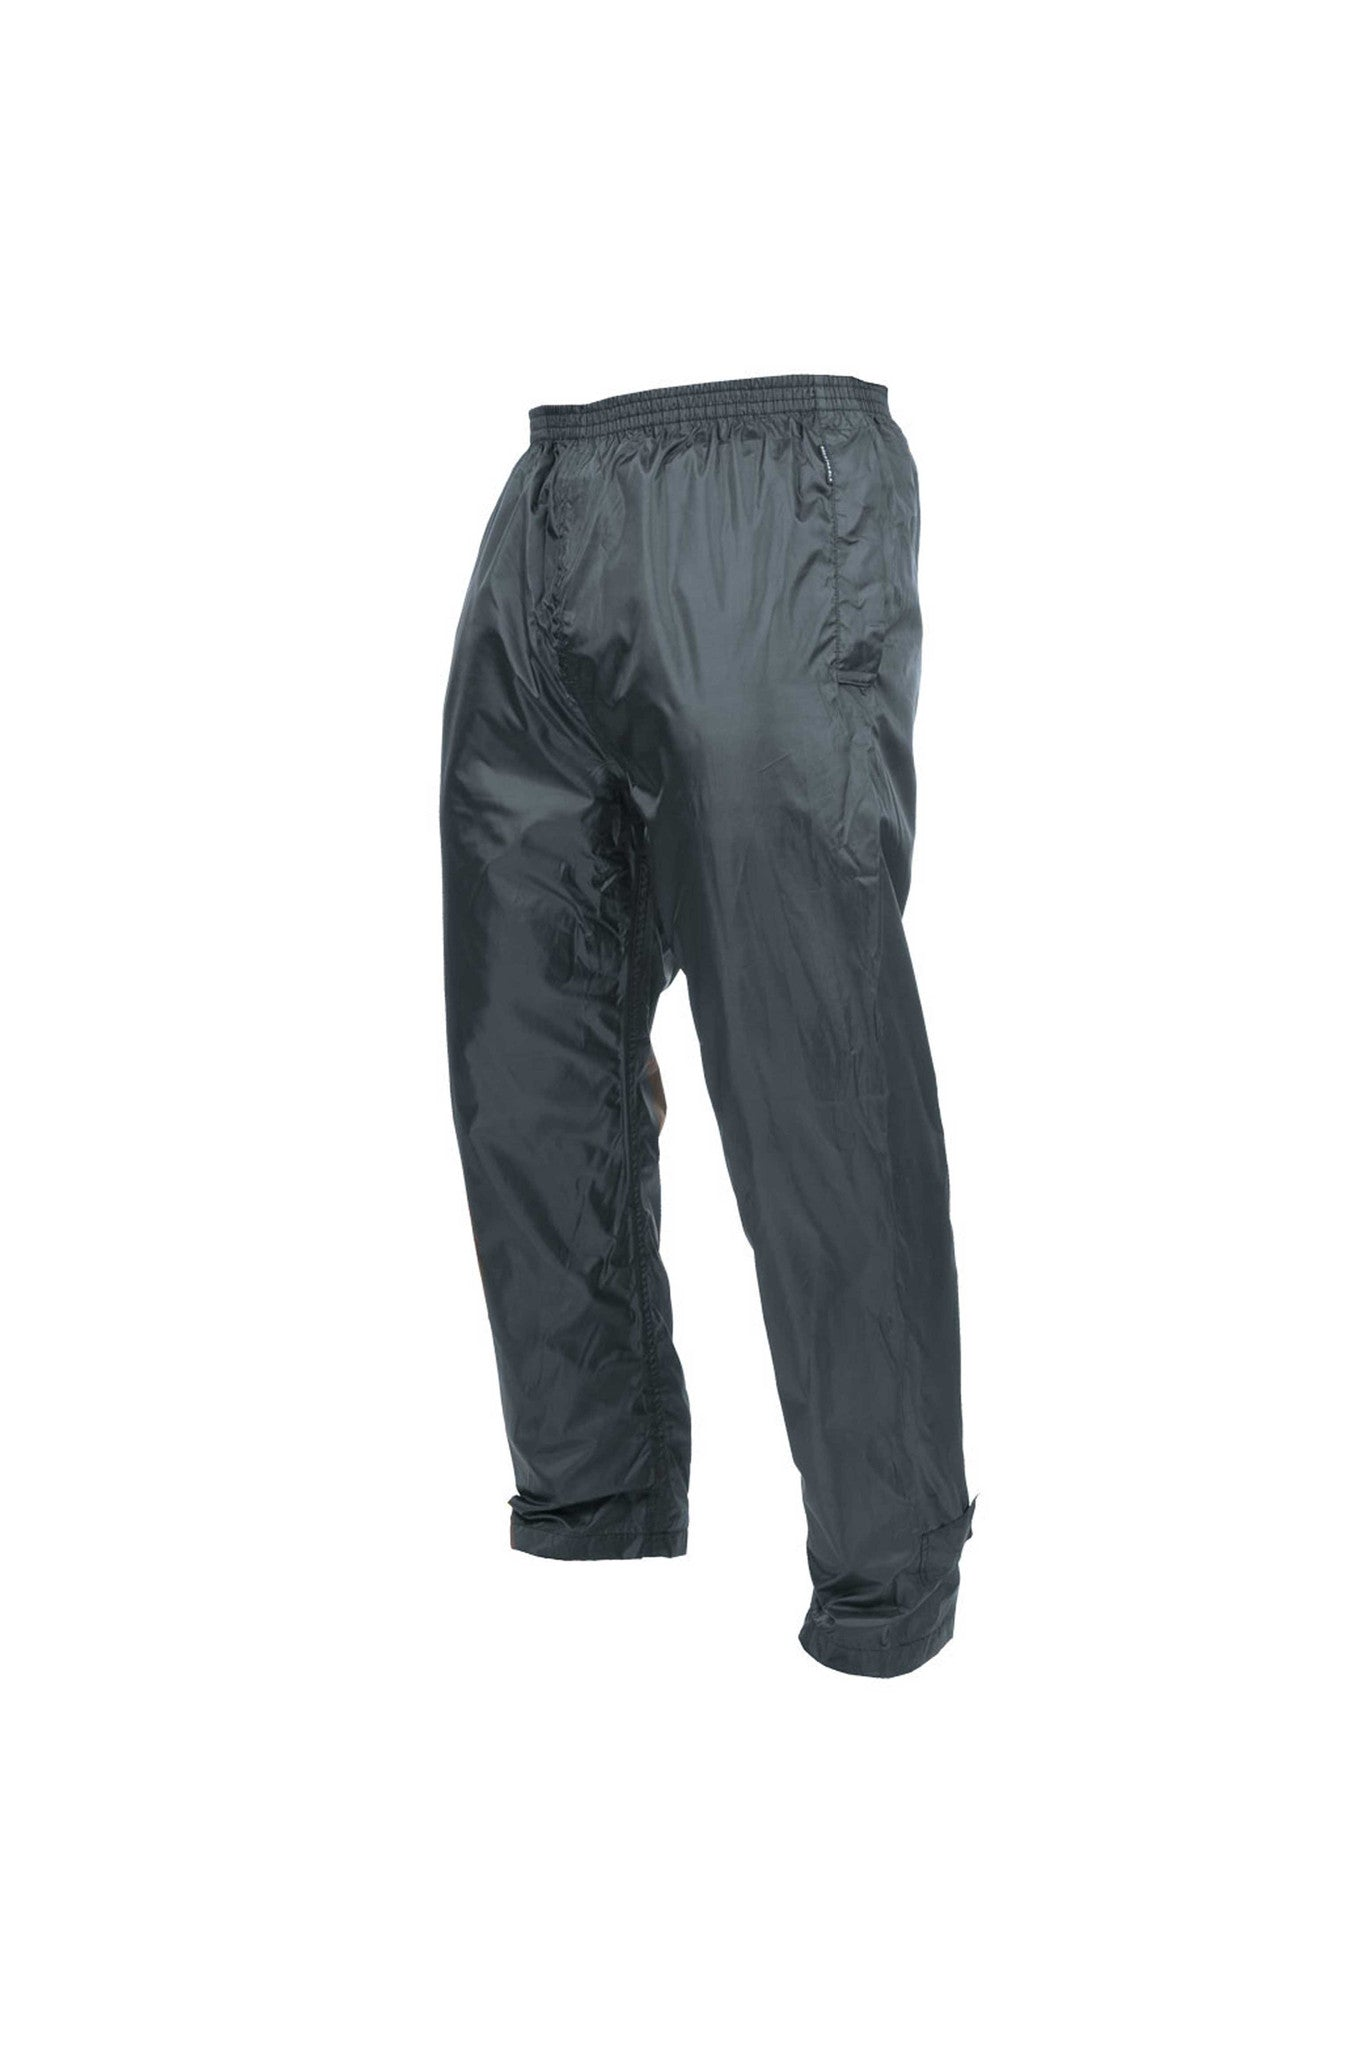 Mac in a Sac Kids Waterproof Overtrousers, Navy